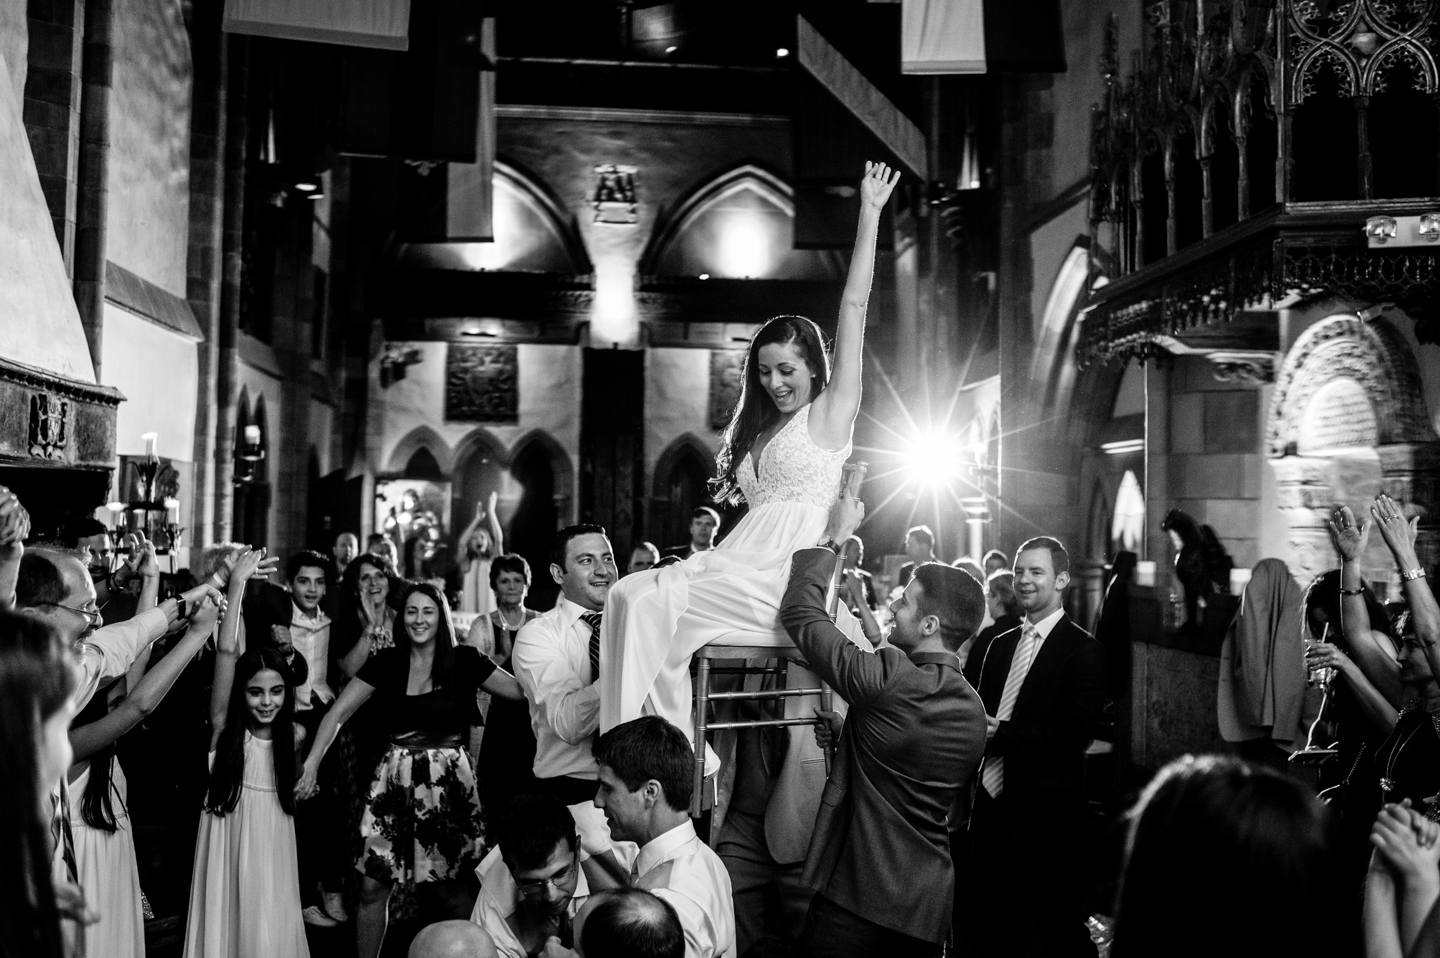 Bride lifted up in chair during the Hora